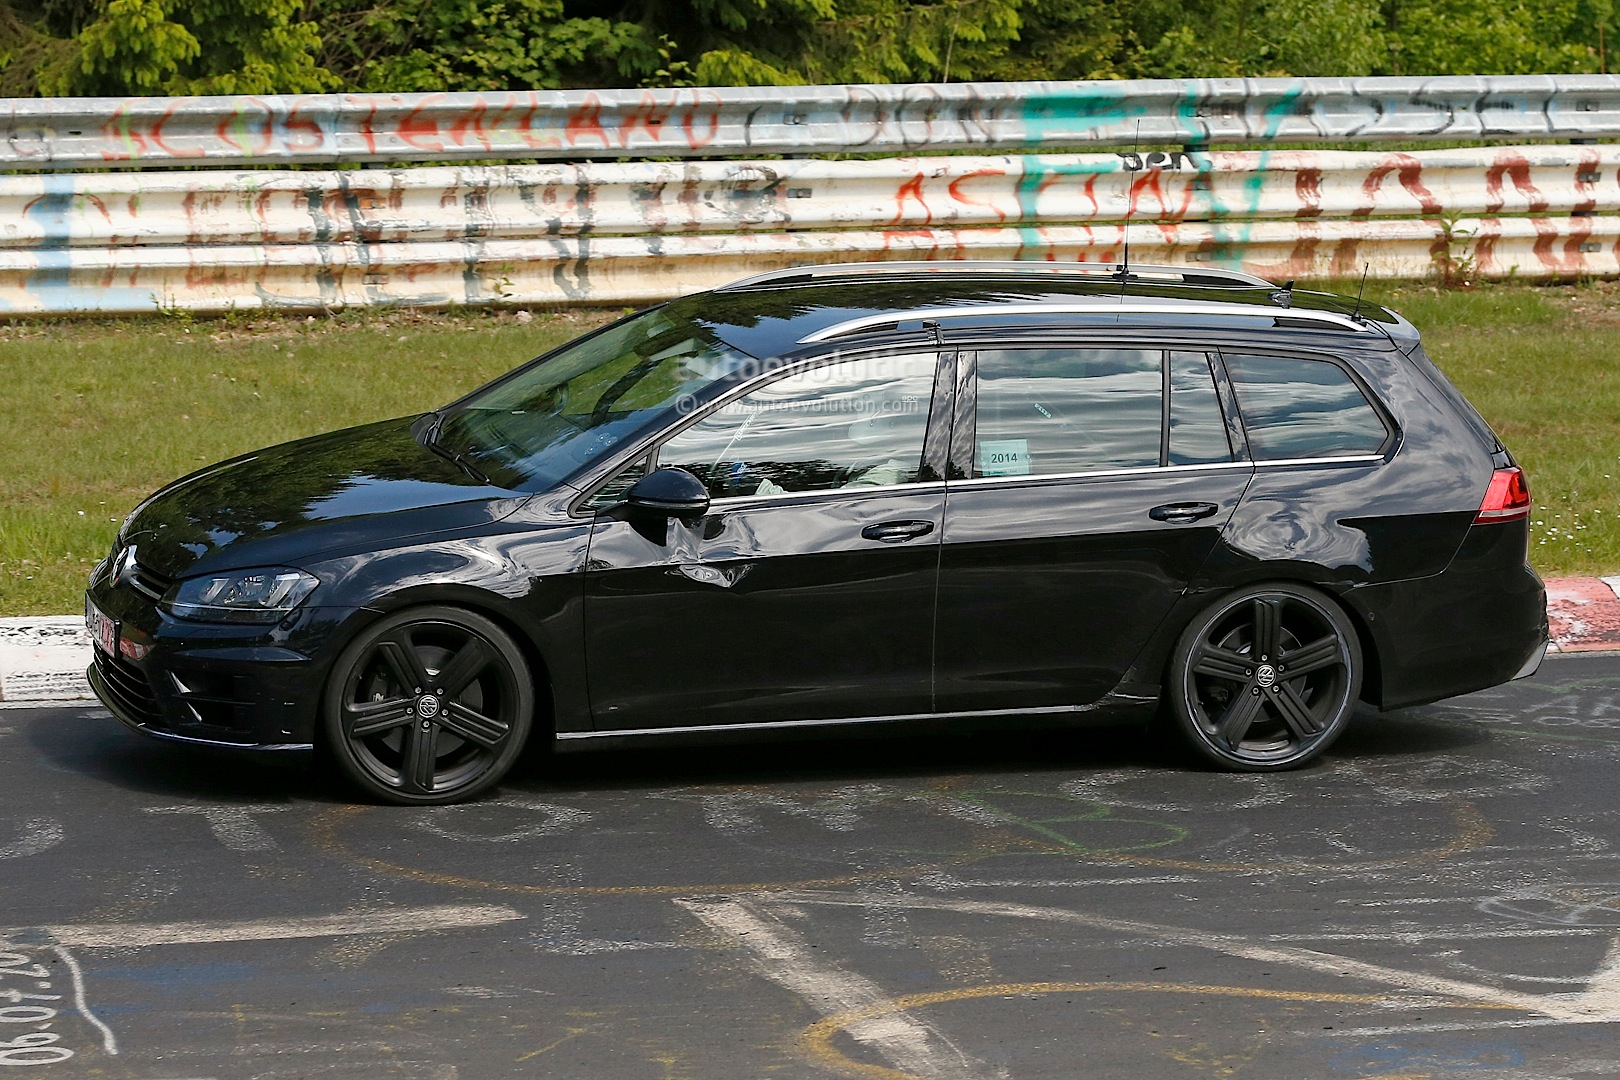 Vw Kit Cars >> Word from the 'Ring: VW Still Undecided on Golf R Estate - autoevolution